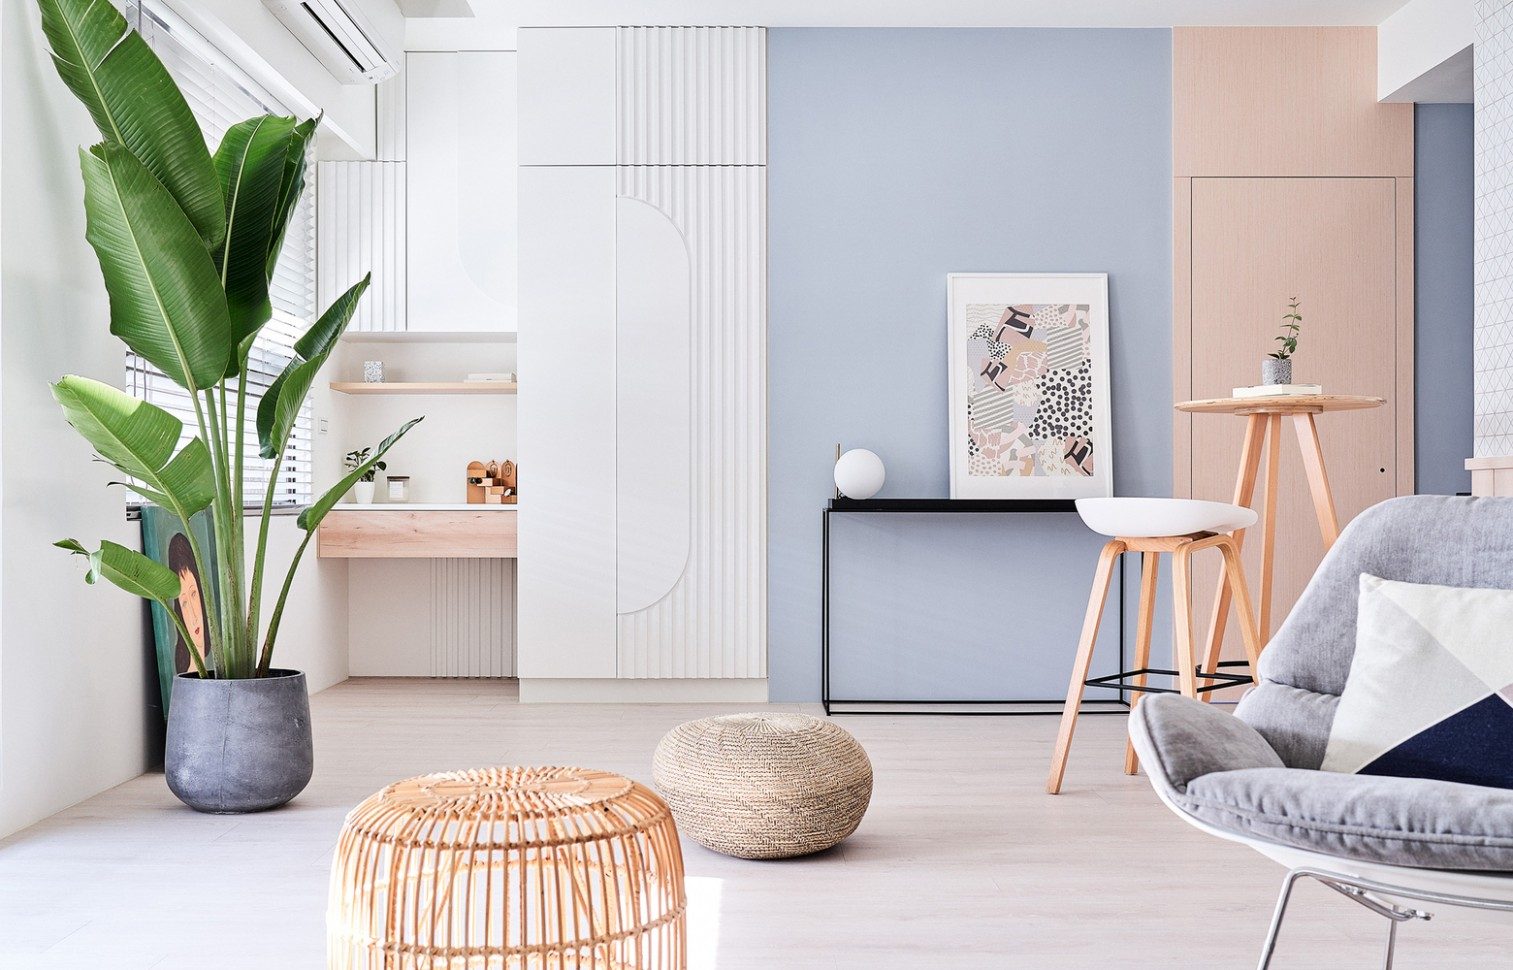 Gallery of Interior Design Trends That Will Shape the Next Decade - 11 - Apartment Design Trends